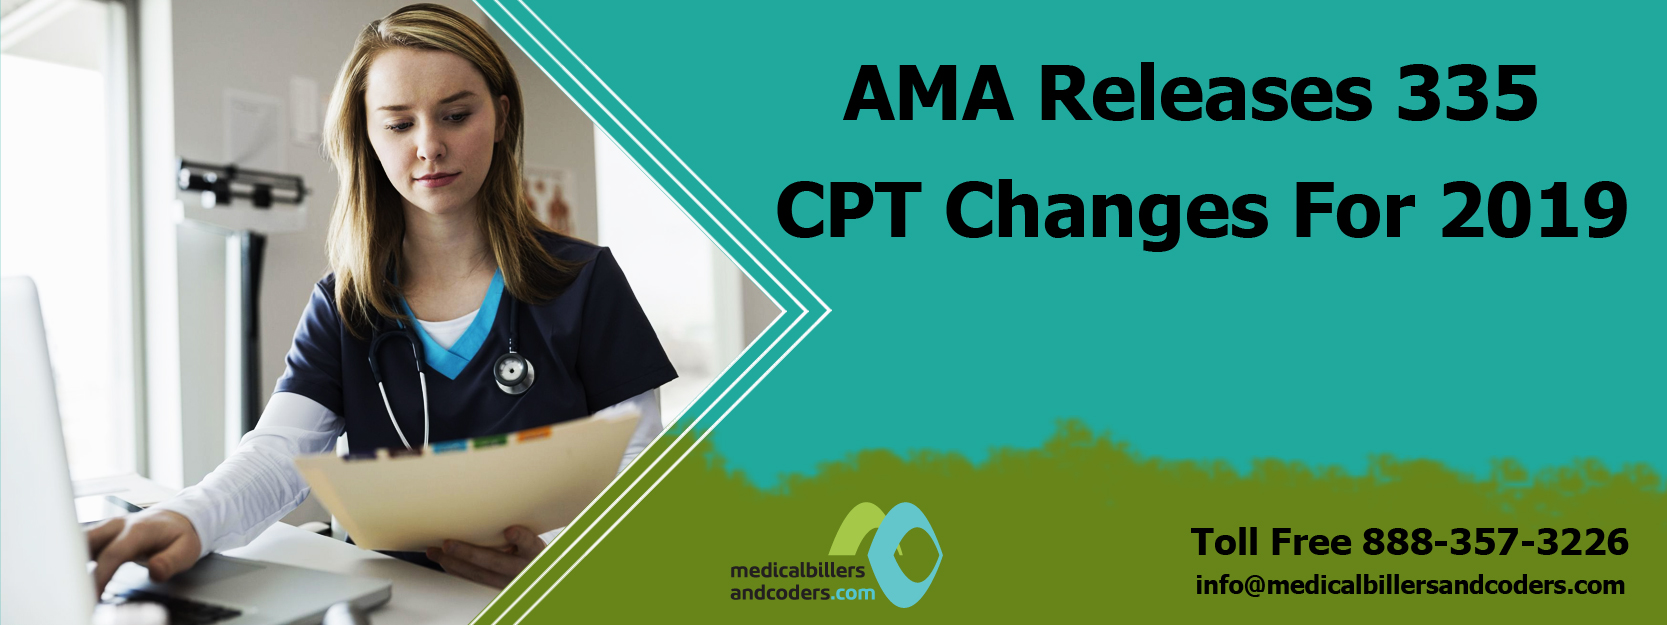 AMA Releases 335 CPT Changes For 2019